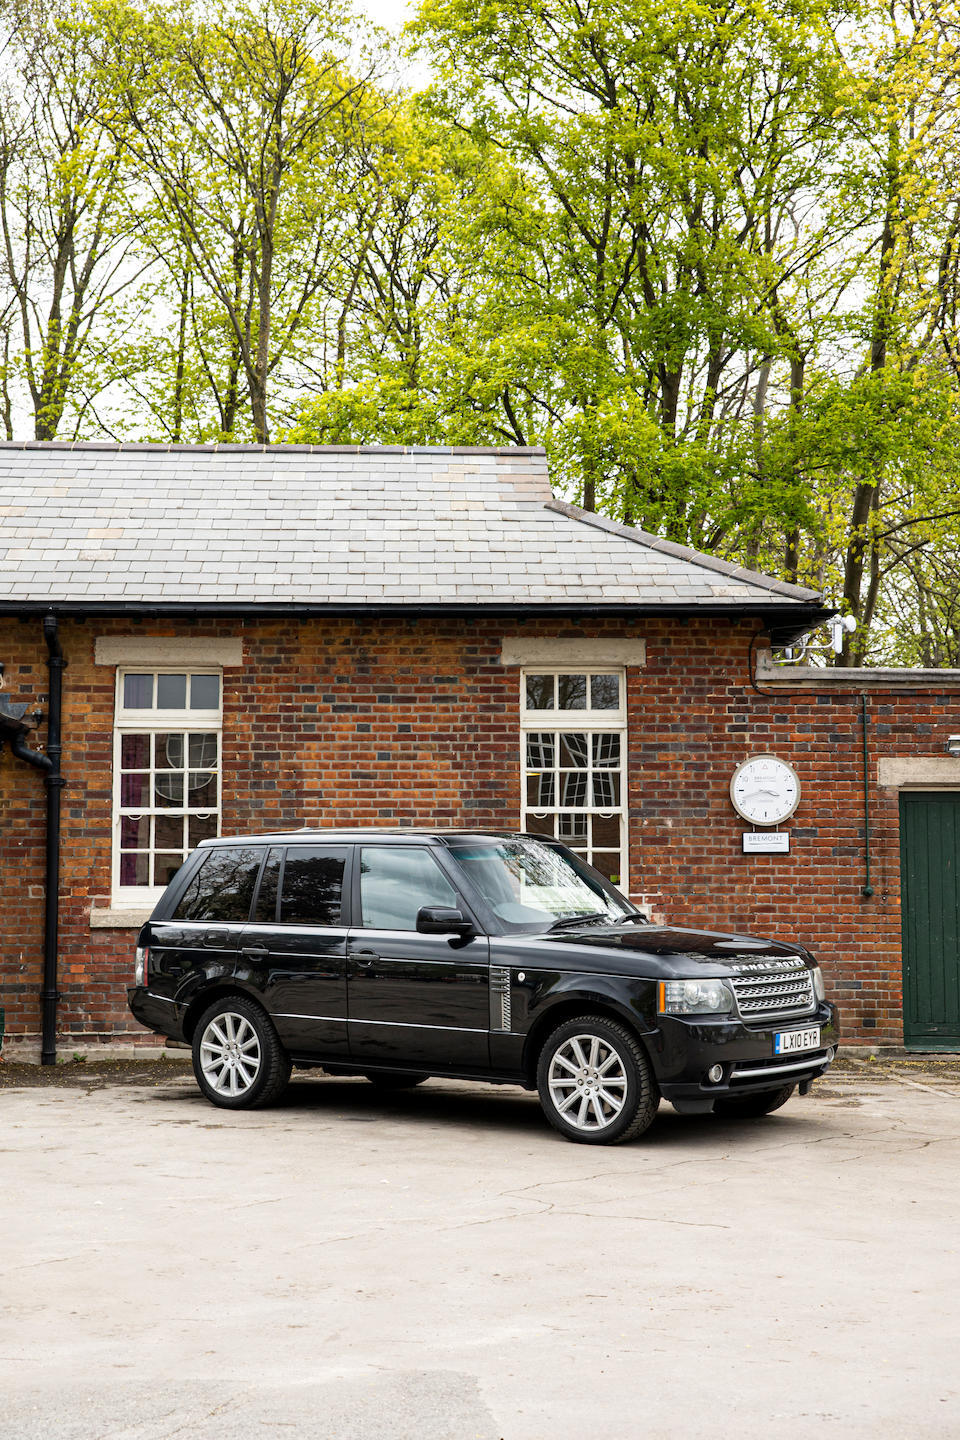 2010 Range Rover 5.0 V8 Supercharged Autobiography  Chassis no. SALLMAME3AA320312